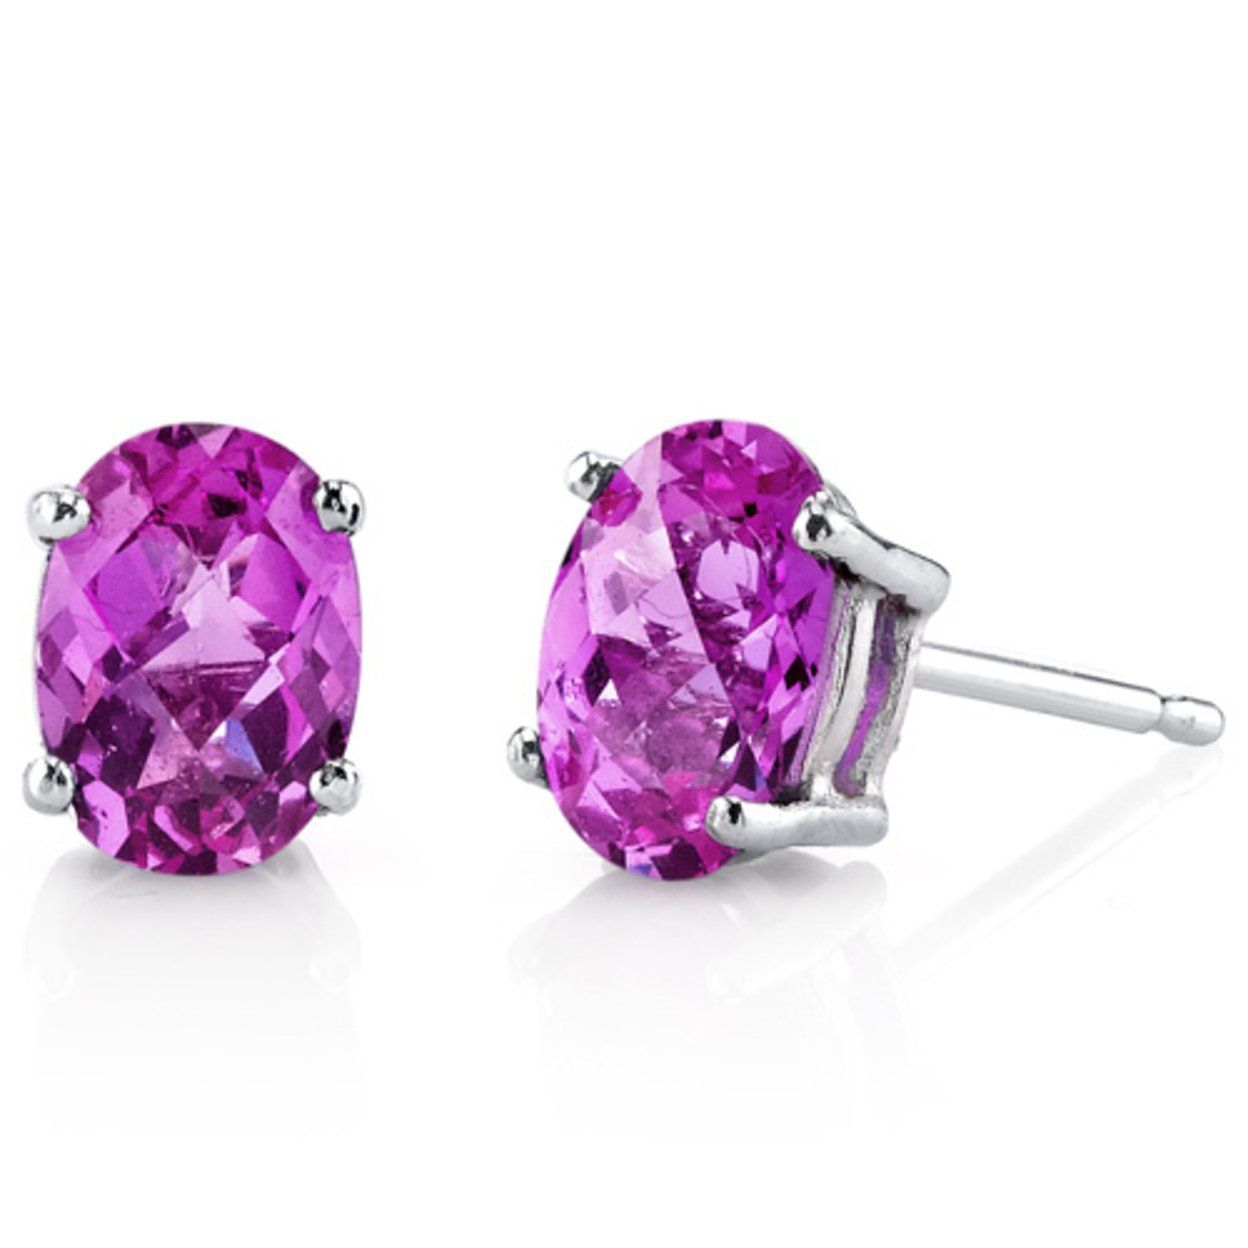 14 Karat White Gold Oval Shape 2.00 Carats Created Pink Sapphire Stud Earrings